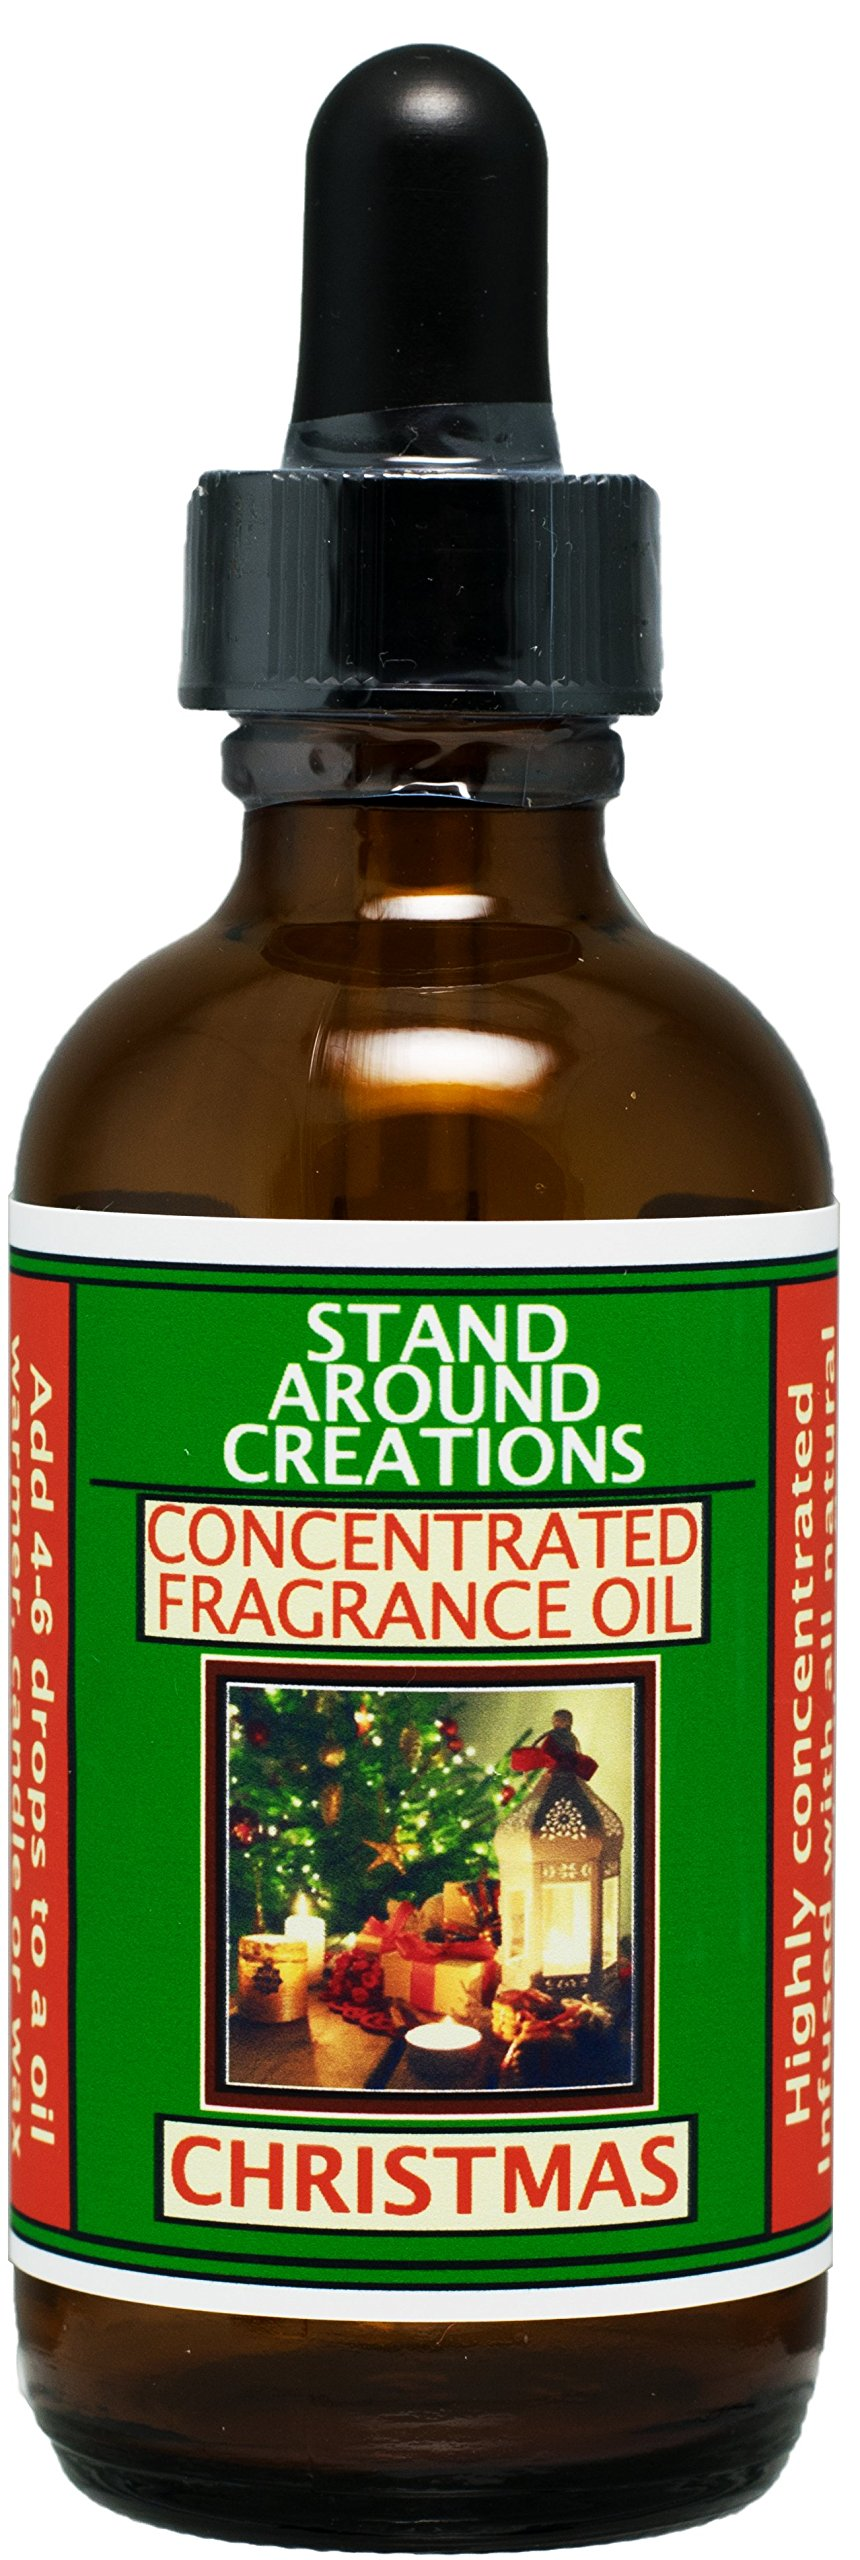 Concentrated Fragrance Oil - Christmas - Orange spice notes from the kitchen, fir w/pine notes from the Christmas tree. Made w/ natural orange, cinnamon, and pine essential oils.(2 fl.oz.) by Stand Around Creations (Image #1)